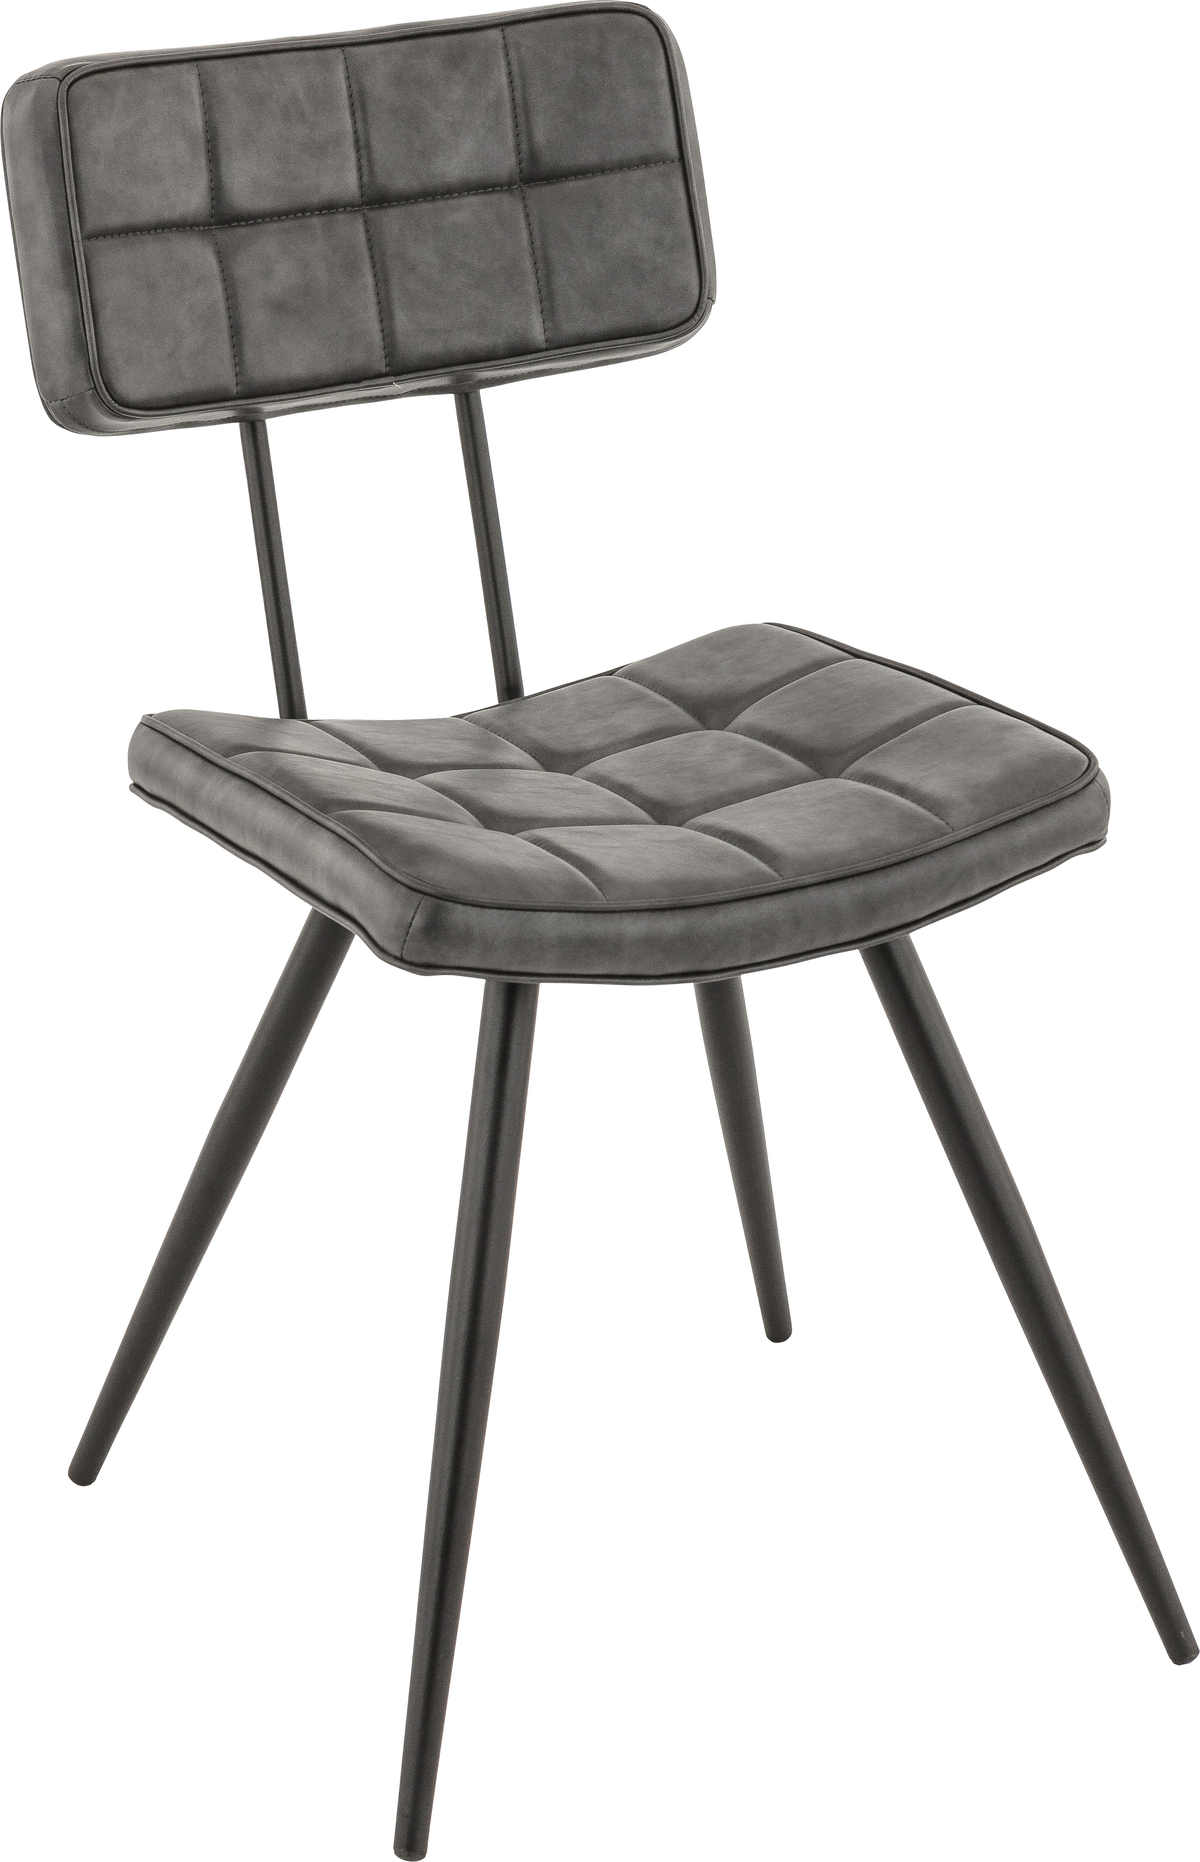 Chaise gris anthracite 42 cm Maurice